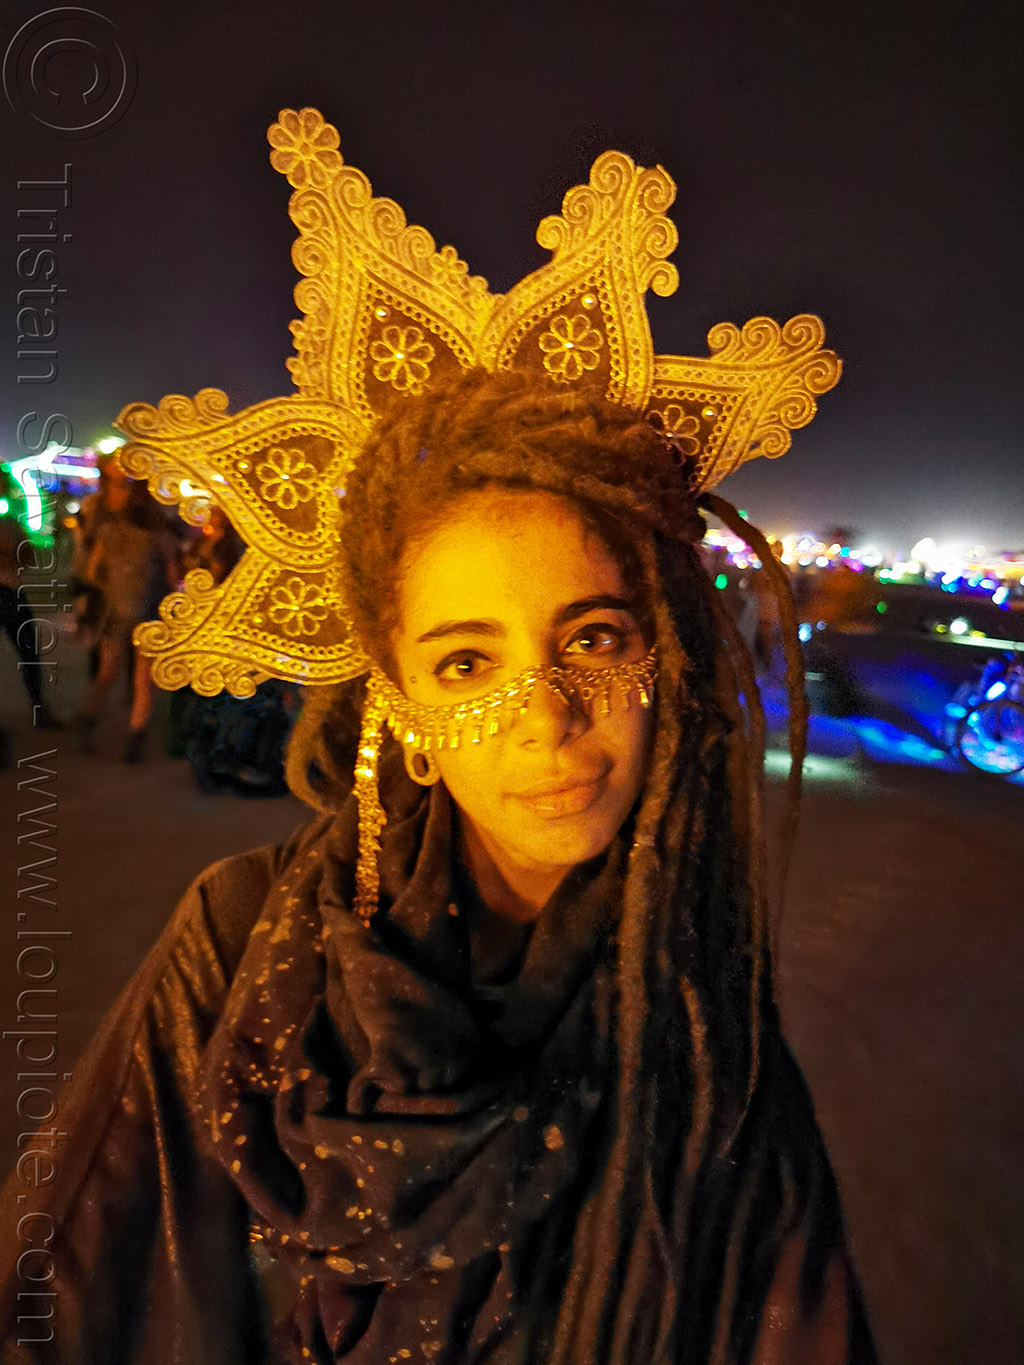 sinem with headdress - burning man 2019, burning man, headdress, night, sinem, woman